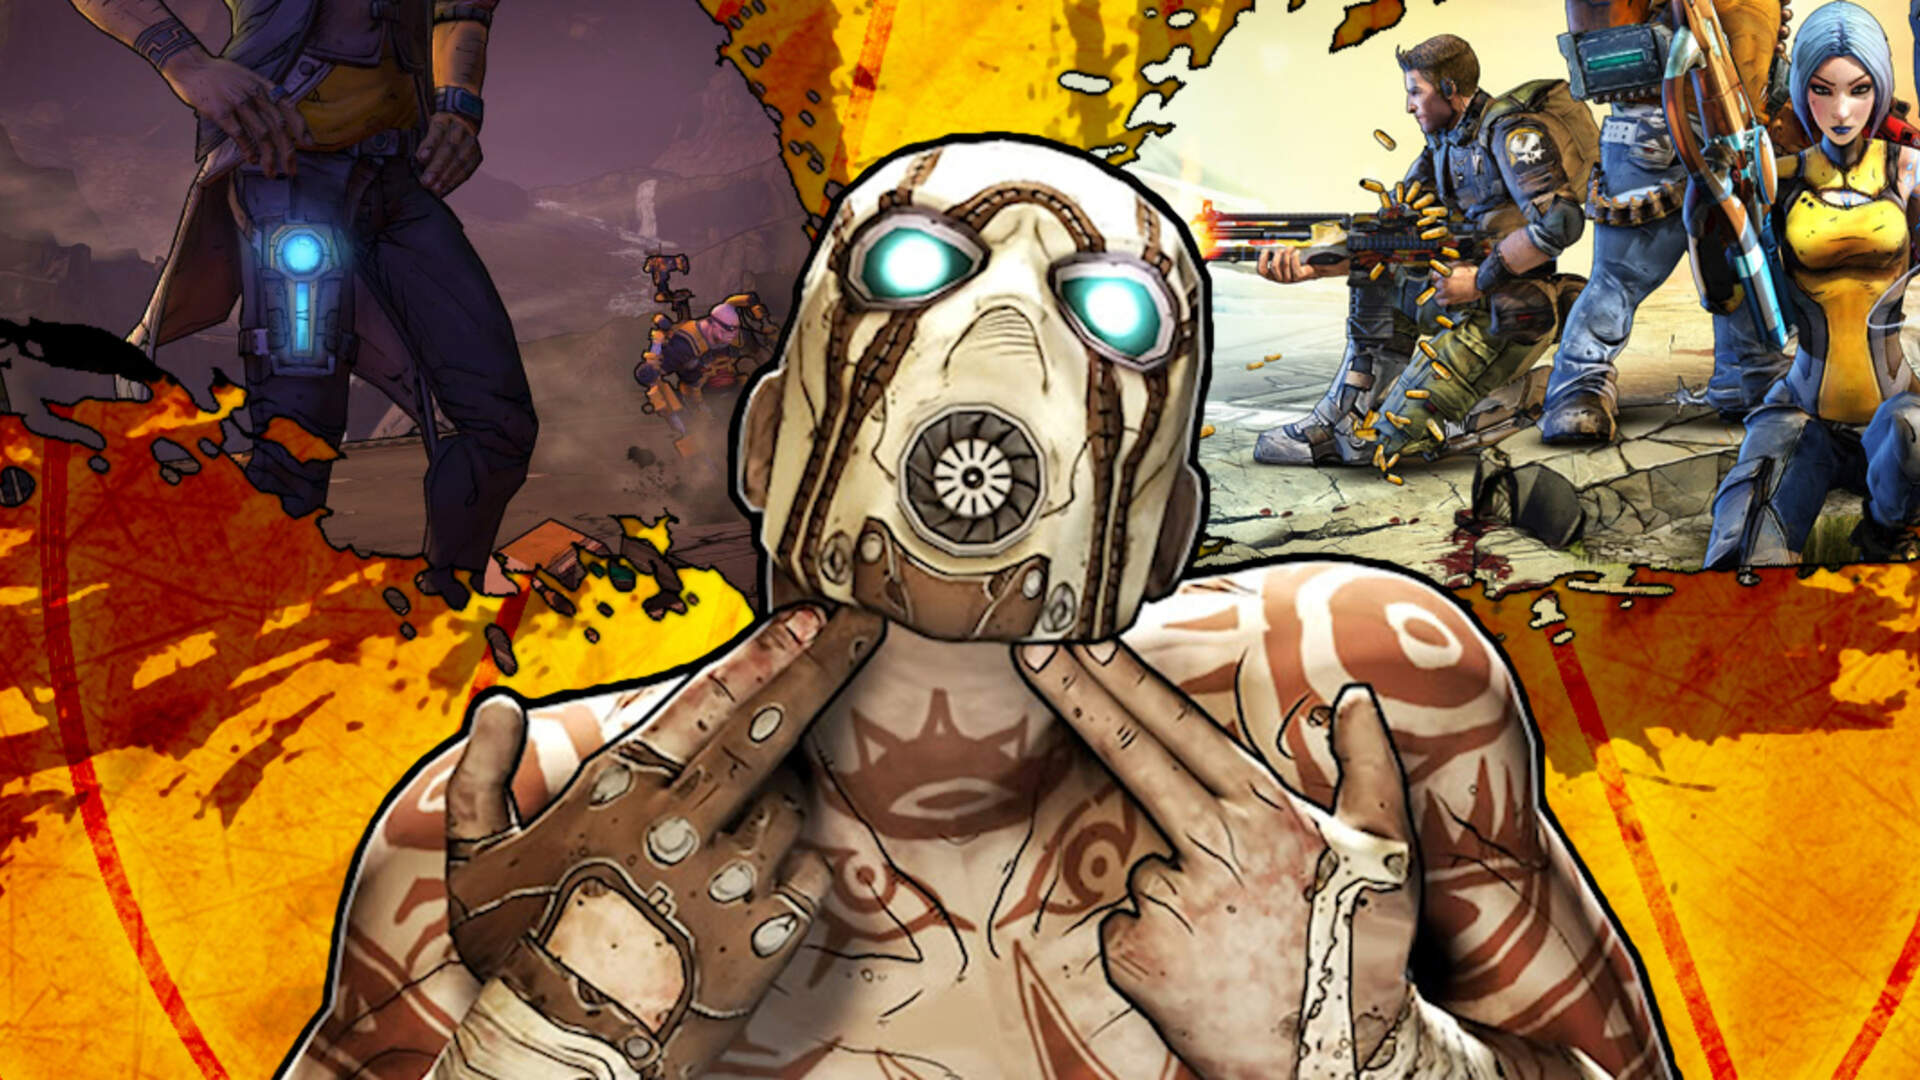 Borderlands: Game of the Year Edition and 4K Update to Handsome Collection Coming Soon